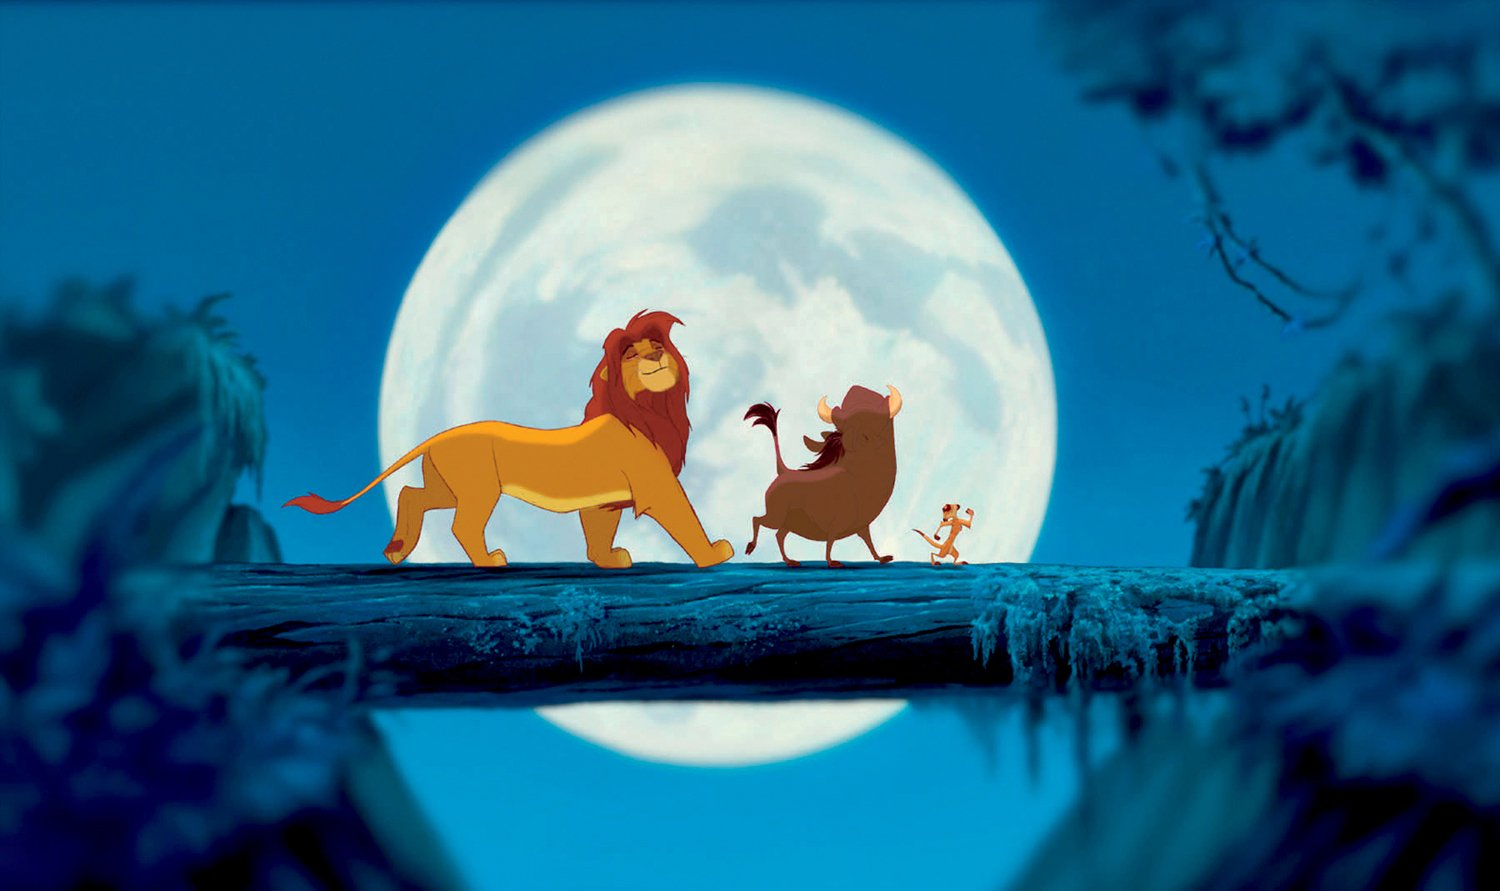 A scene from Disney's The Lion King